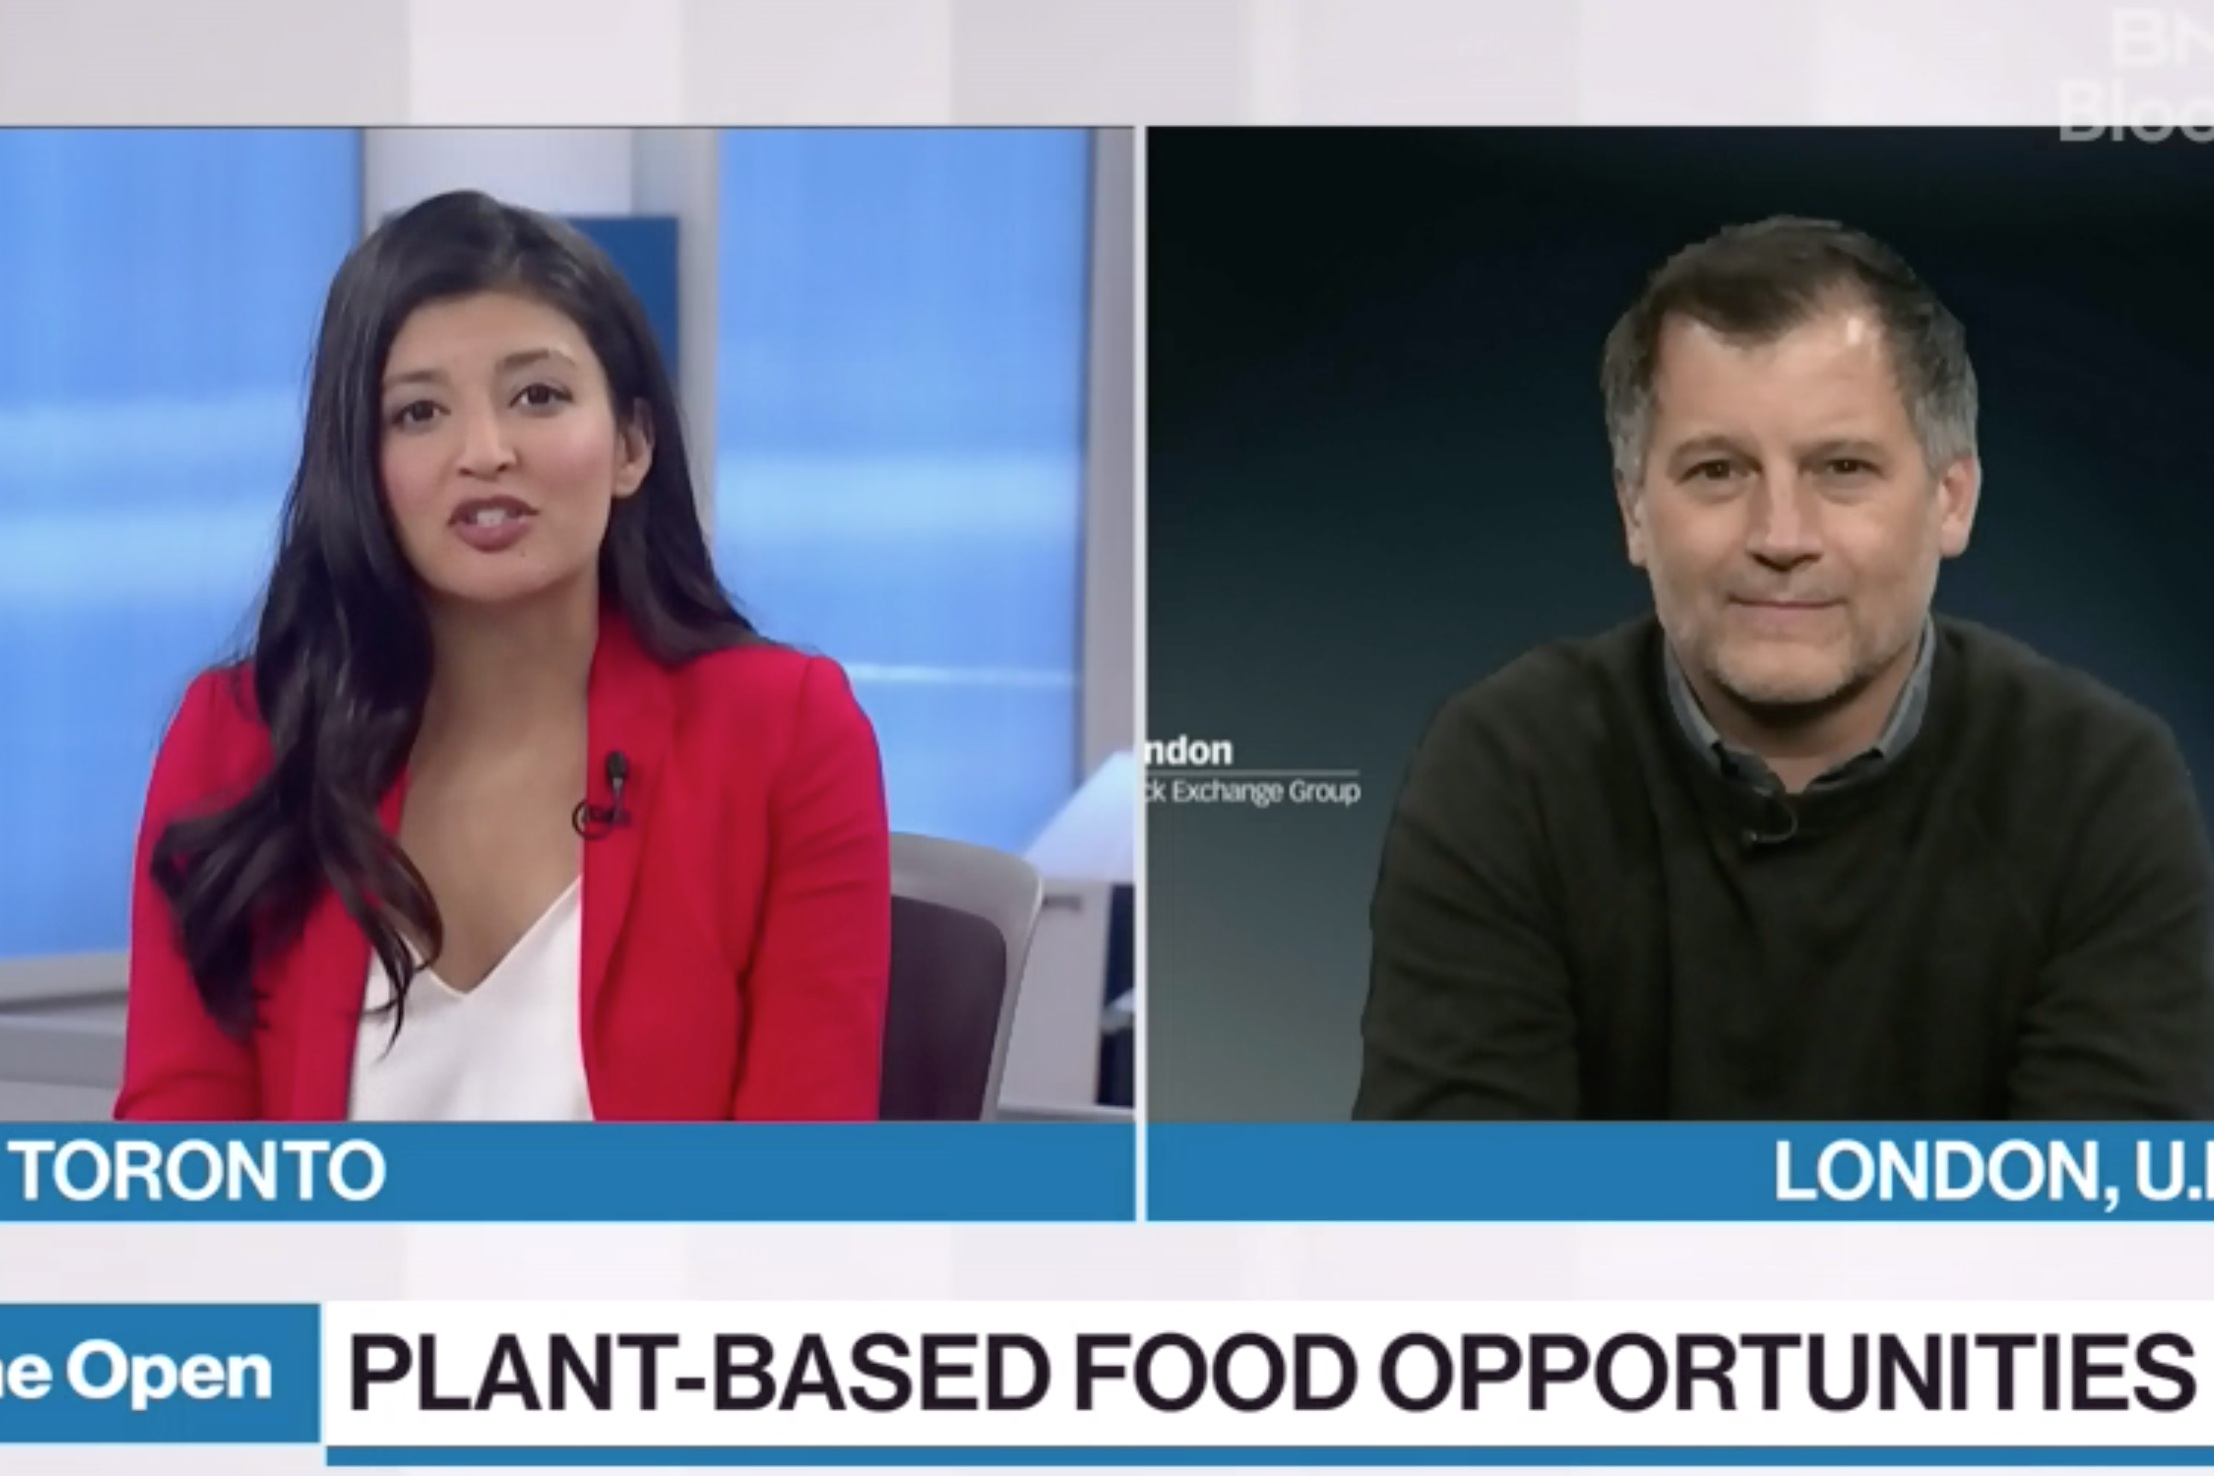 BNN Bloomberg Interviews CIO Chris Kerr.  Venture capital firms finding opportunities in the growing plant-based food space. Chris Kerr, co-founder and chief investment officer at New Crop Capital, joins BNN Bloomberg to lay out the plant-based food landscape.   Watch the Interview